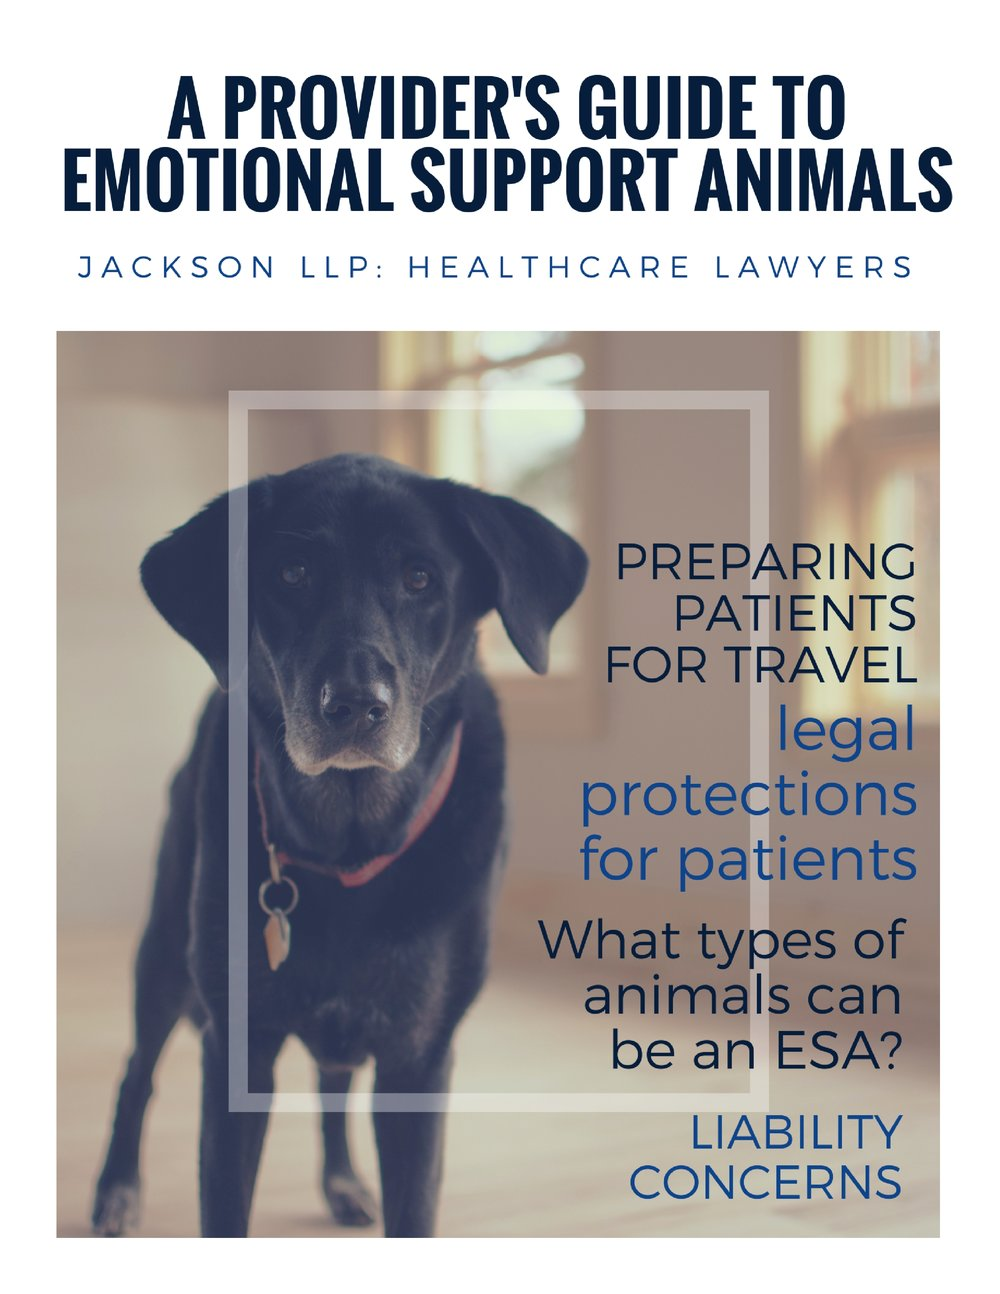 a provider's guide_ emotional support animals.jpg